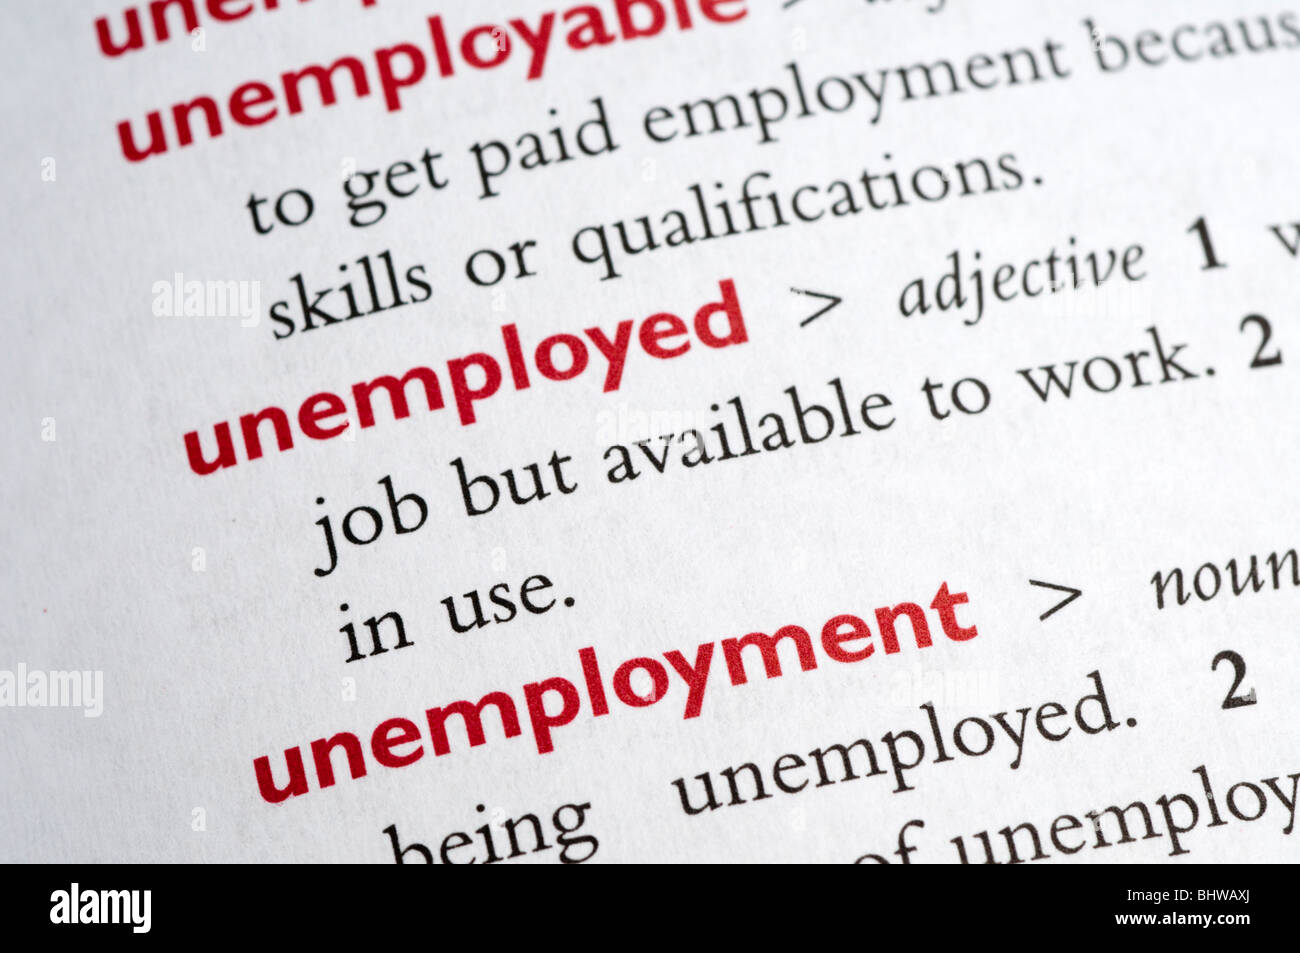 Dictionary definition of unemployed - Stock Image